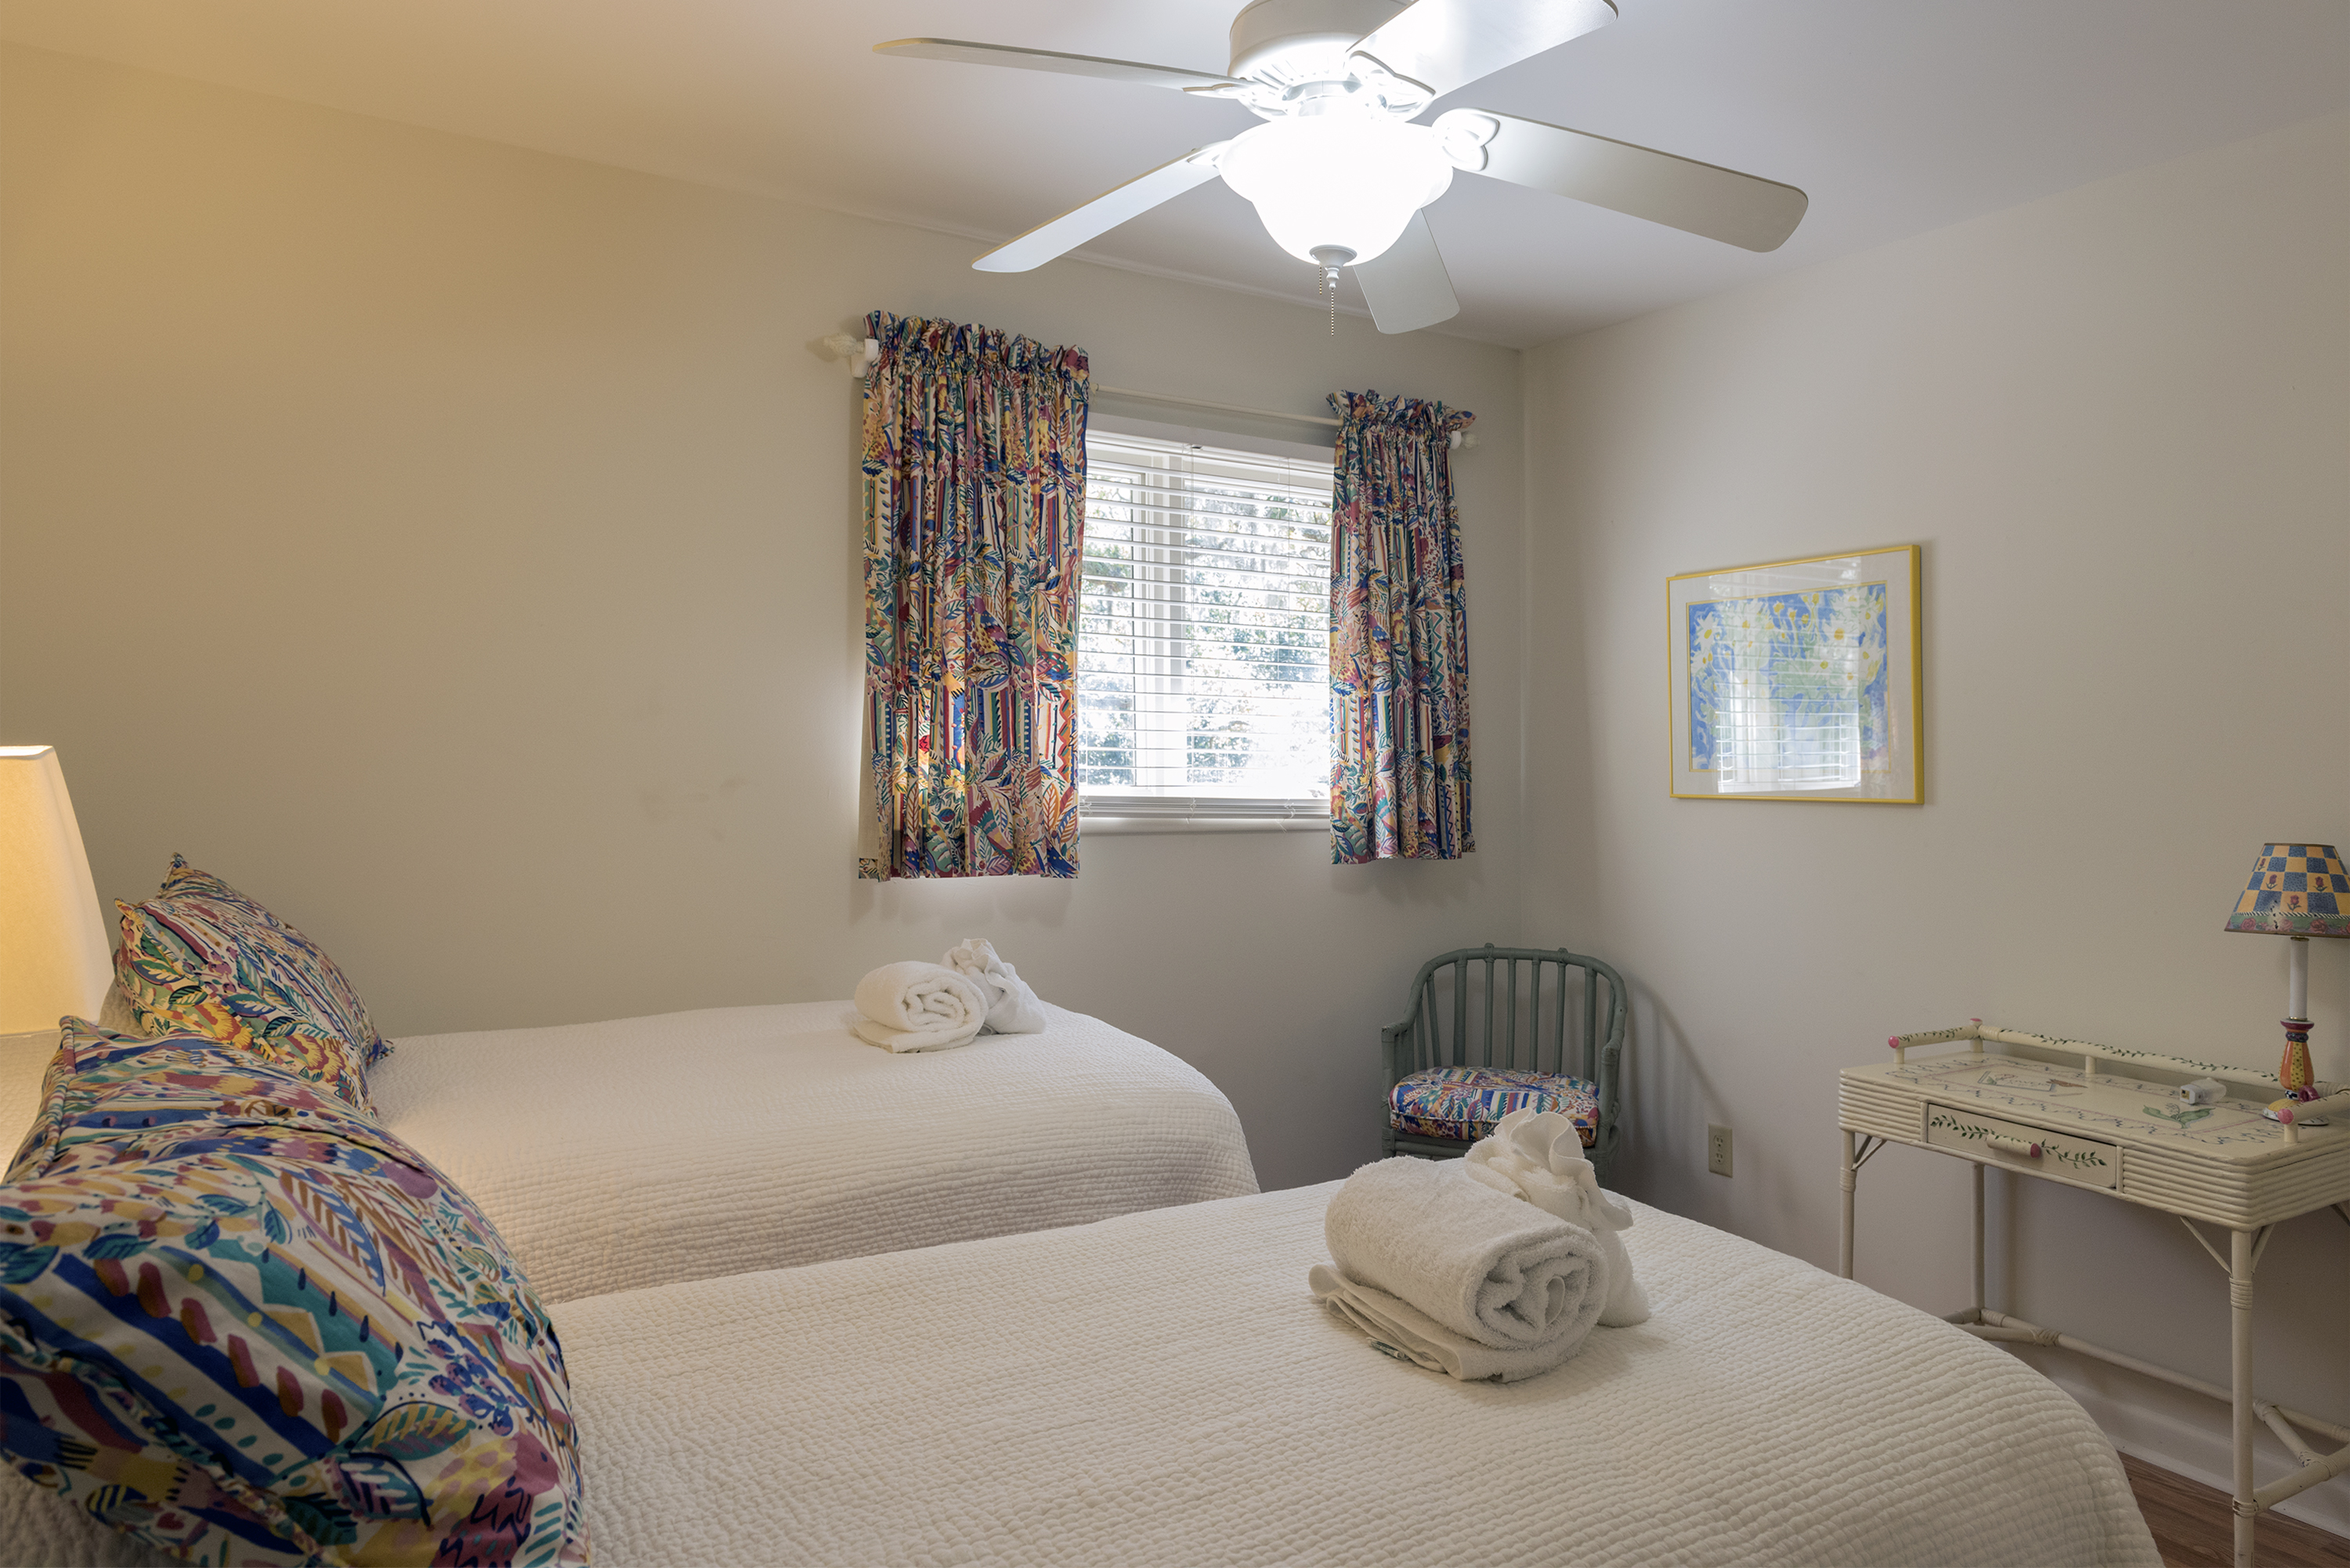 Your guests will feel very comfortable in this bedroom.